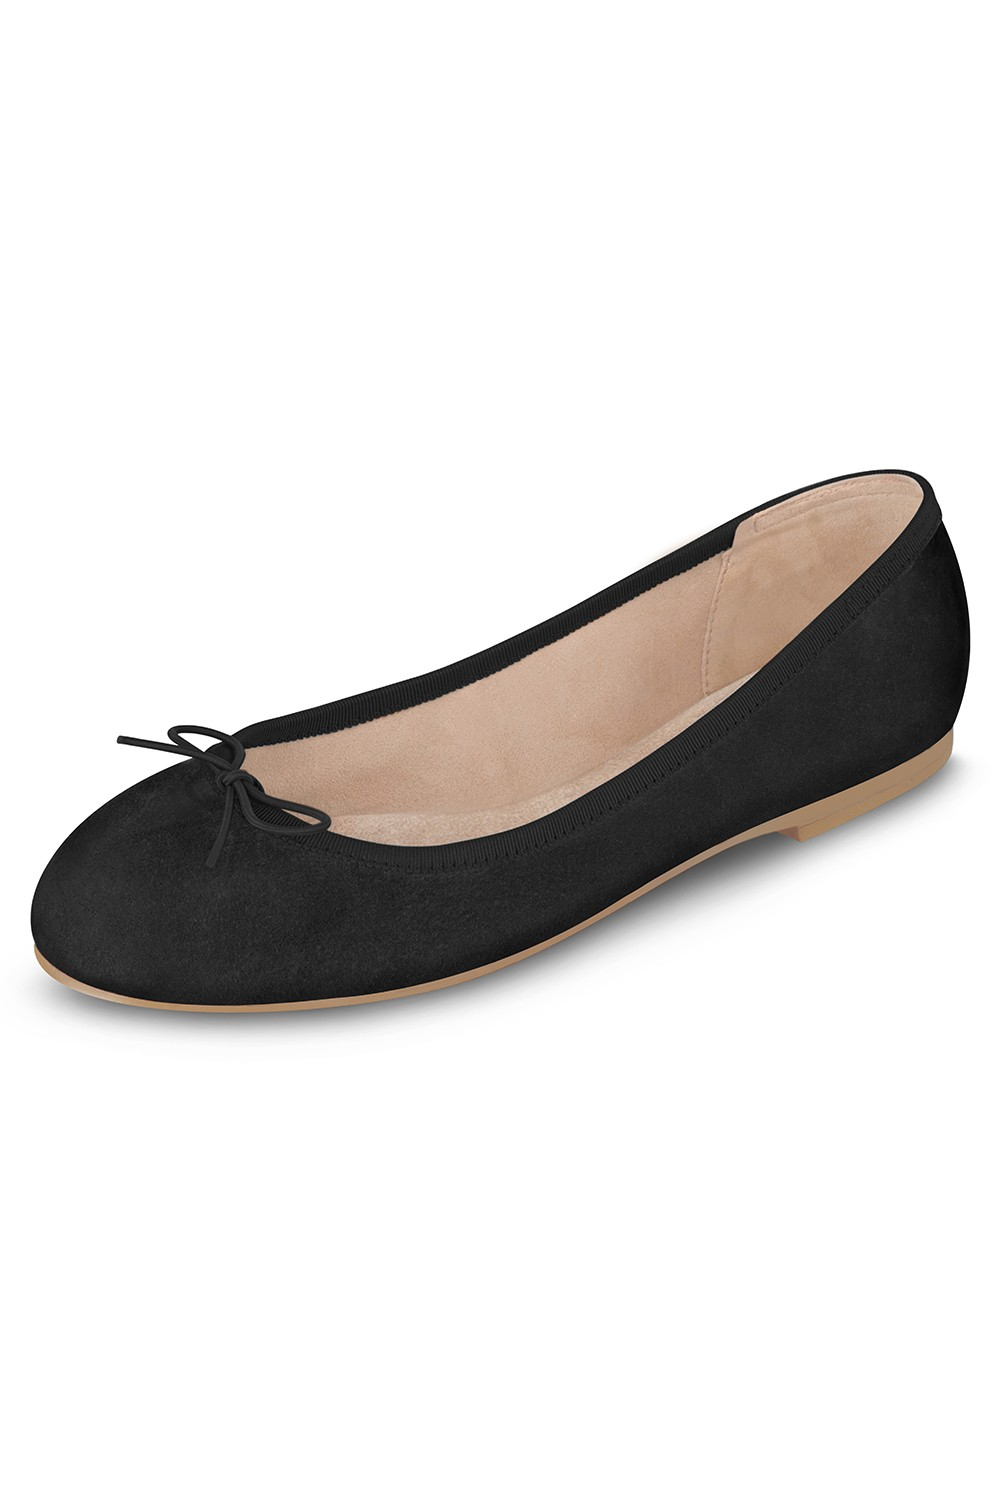 Suede Ladies Ballerina Womens Fashion Shoes